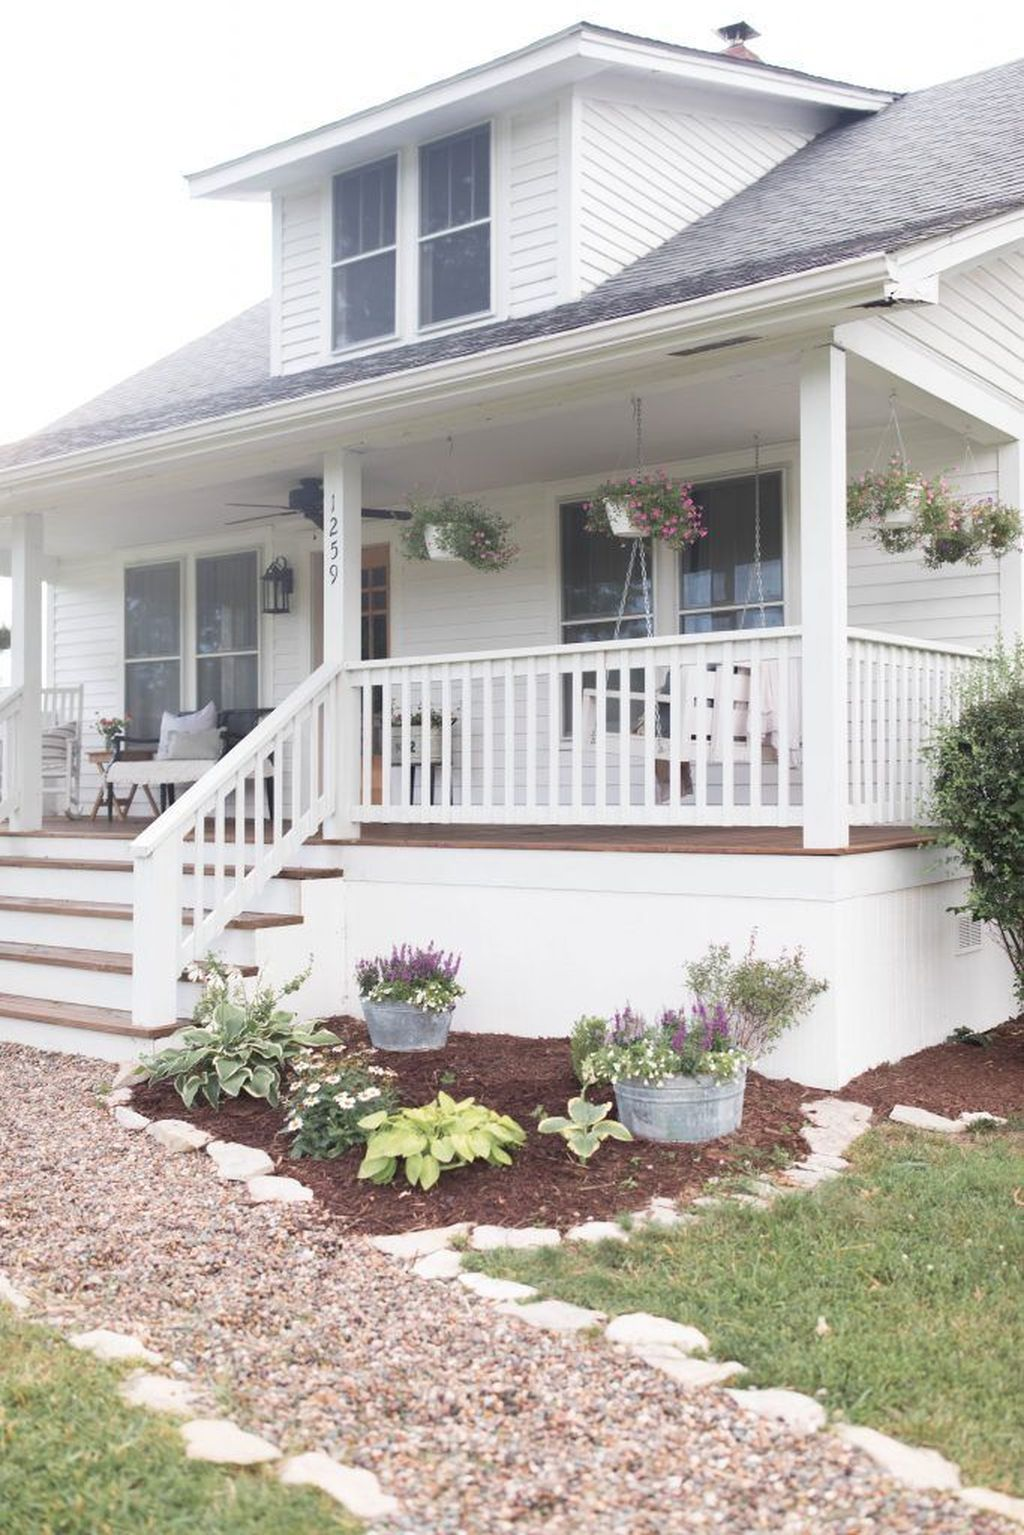 The Best Front Porch Ideas For Summer Decorating 01